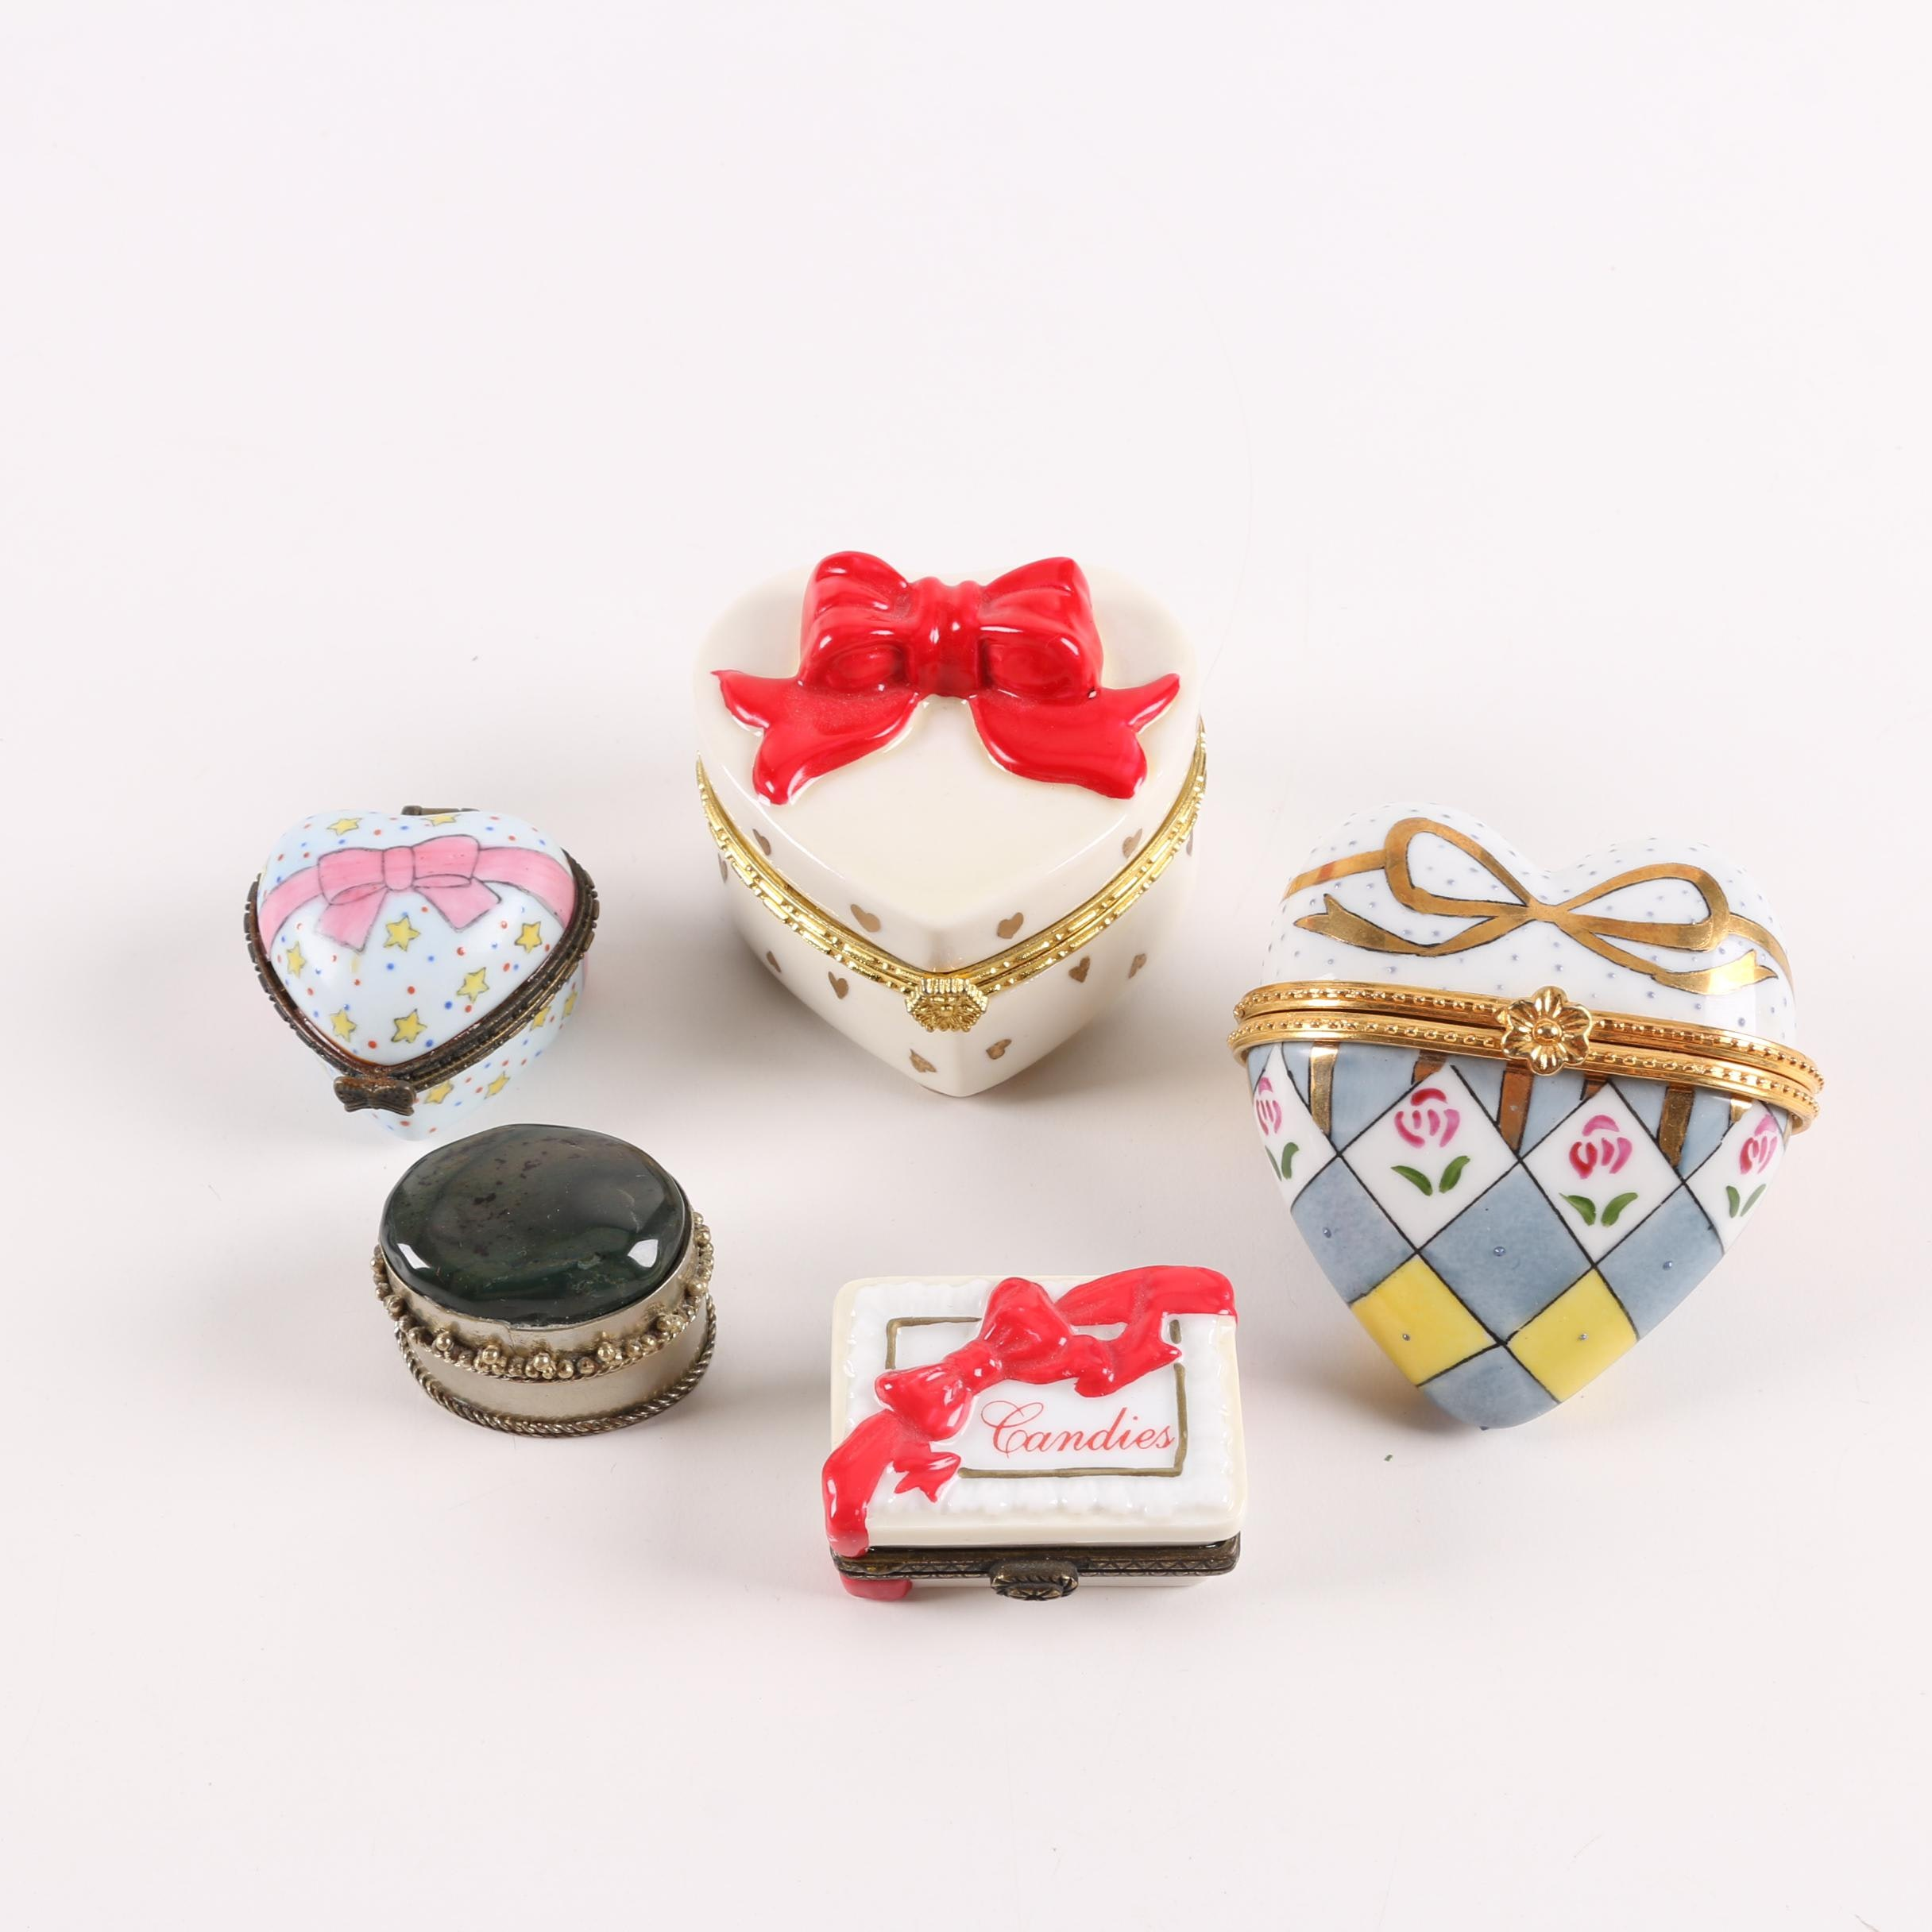 Hand-Painted Porcelain Trinket Boxes